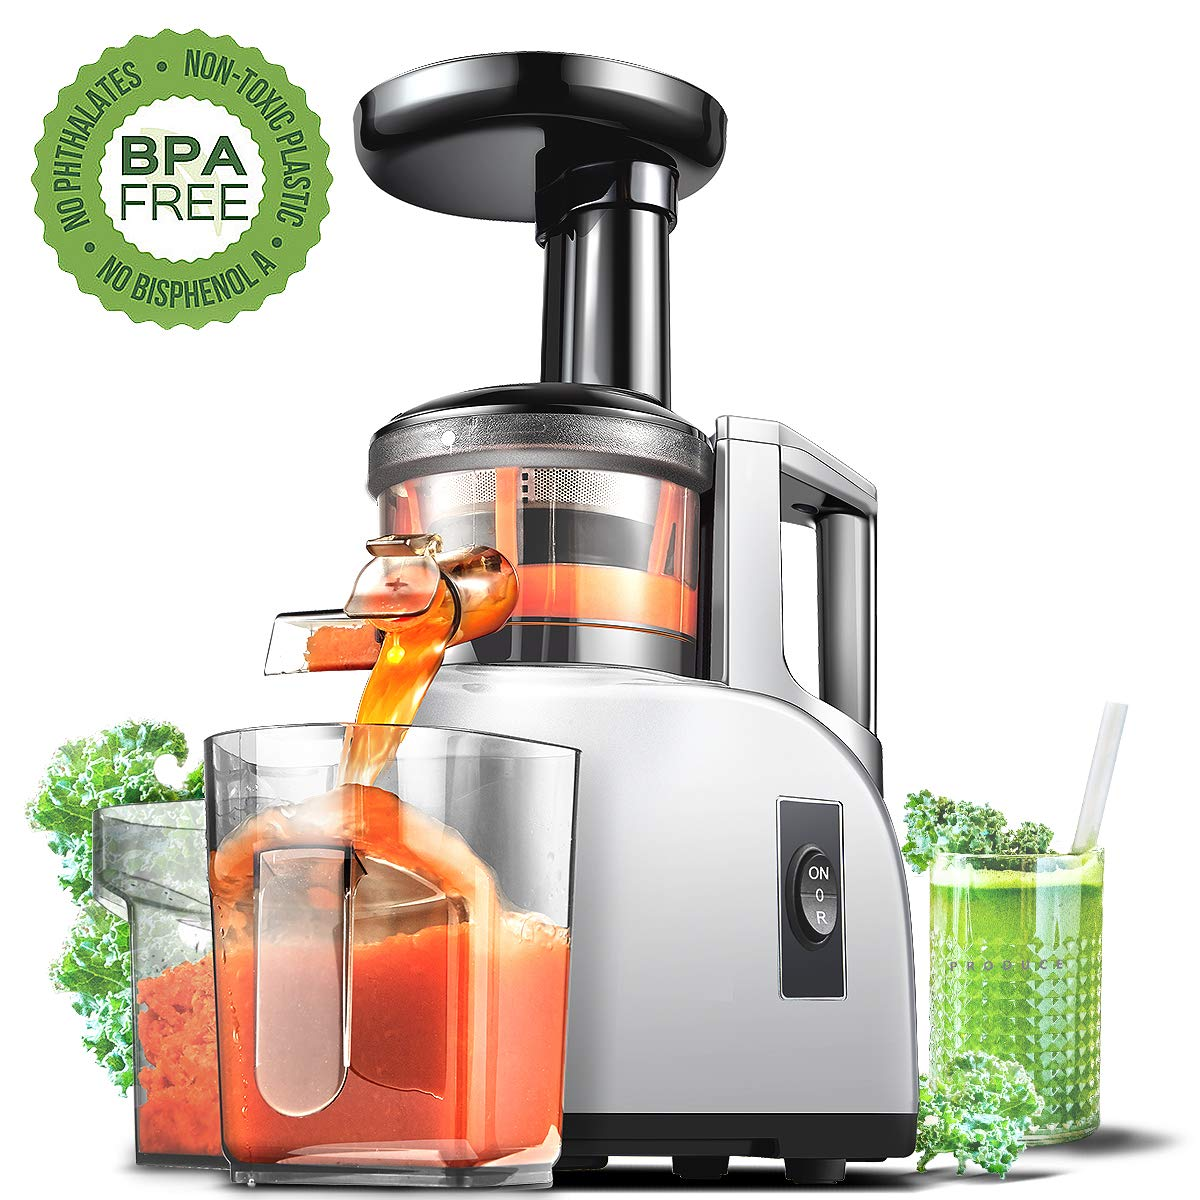 Slow Juicer AMZCHEF Slow Masticating Juicer Extractor Slow Cold Press Juicer Machine Quiet Motor Reverse Function Portable Handle Brush&Vegetable Fruit Juice Jugs BPA Free 55RPM by AMZCHEF